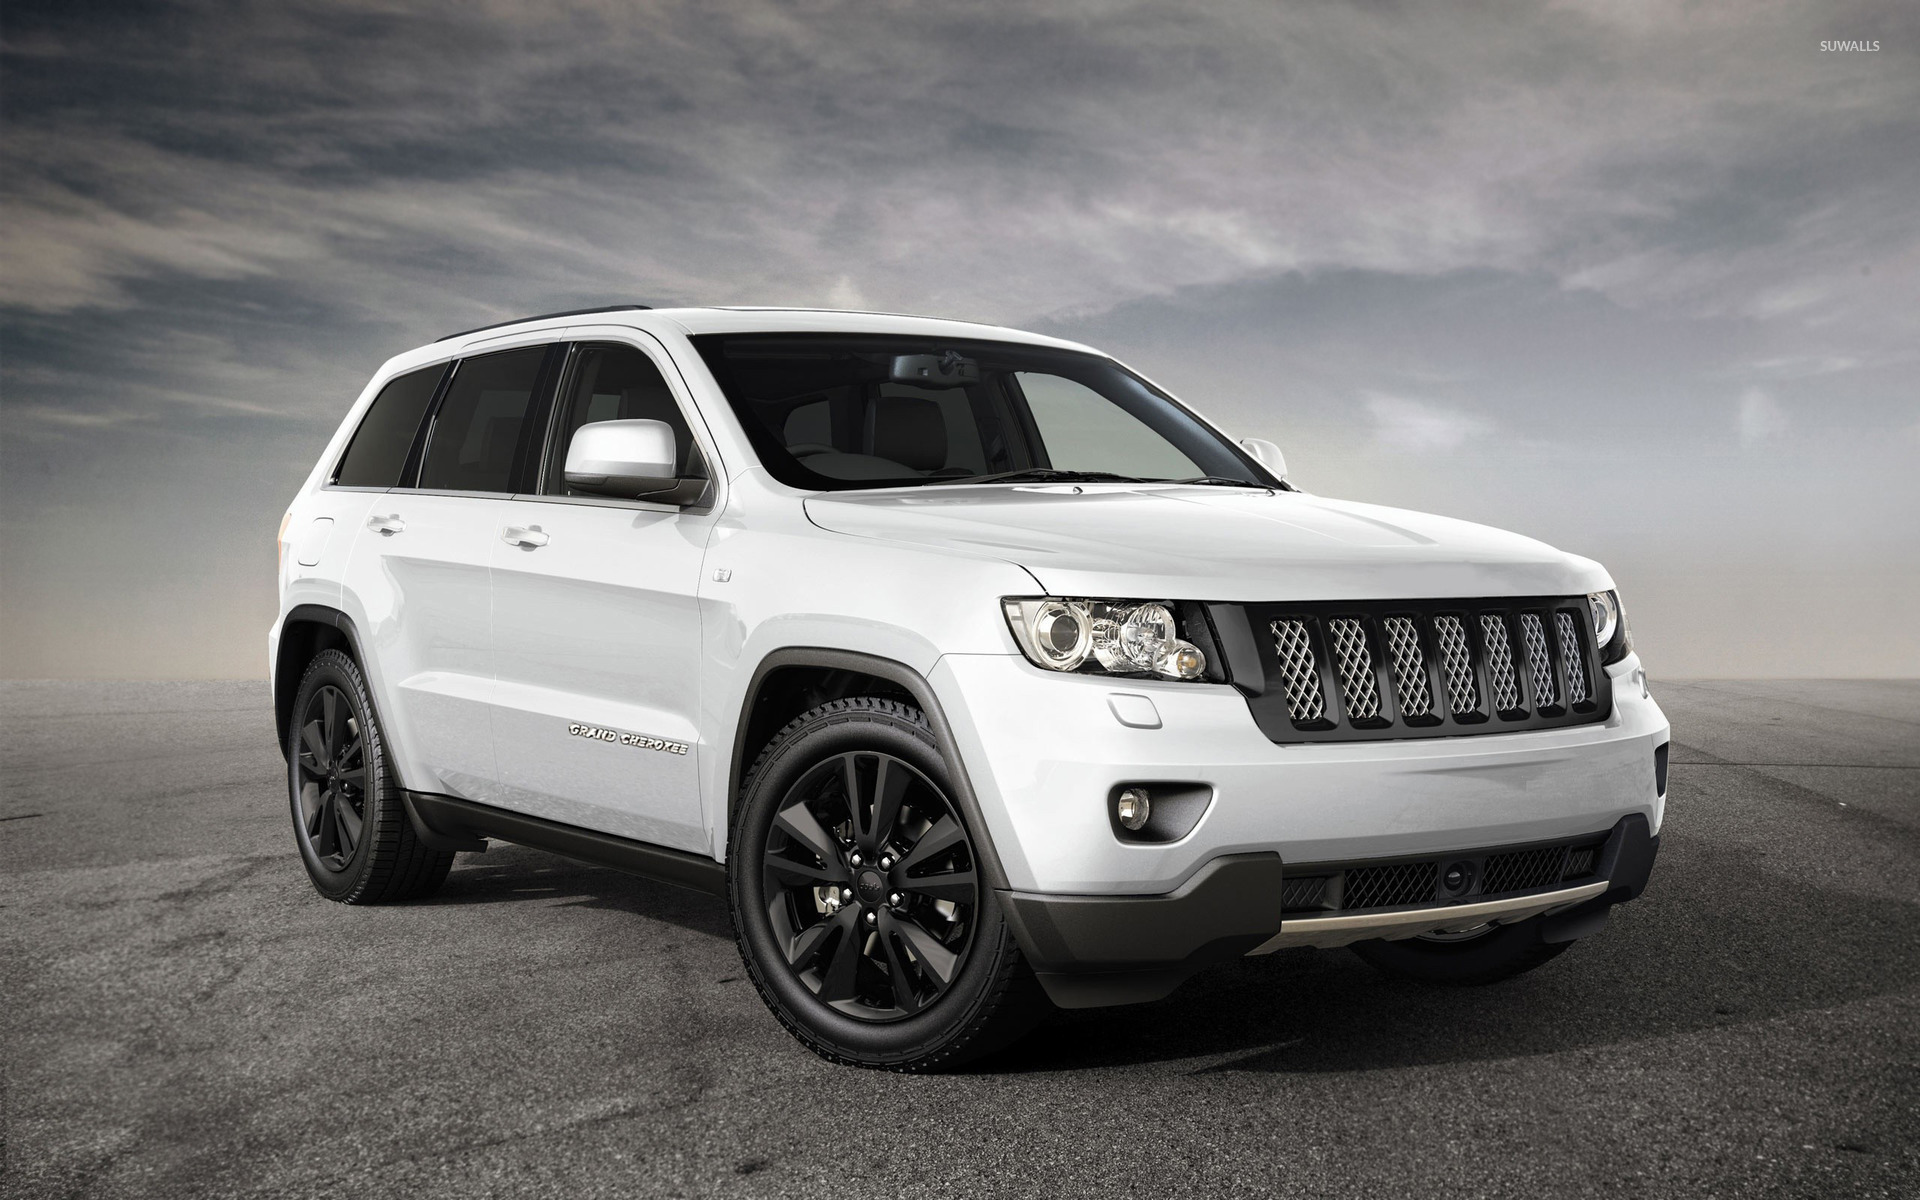 jeep grand cherokee wallpaper car wallpapers 18307. Black Bedroom Furniture Sets. Home Design Ideas